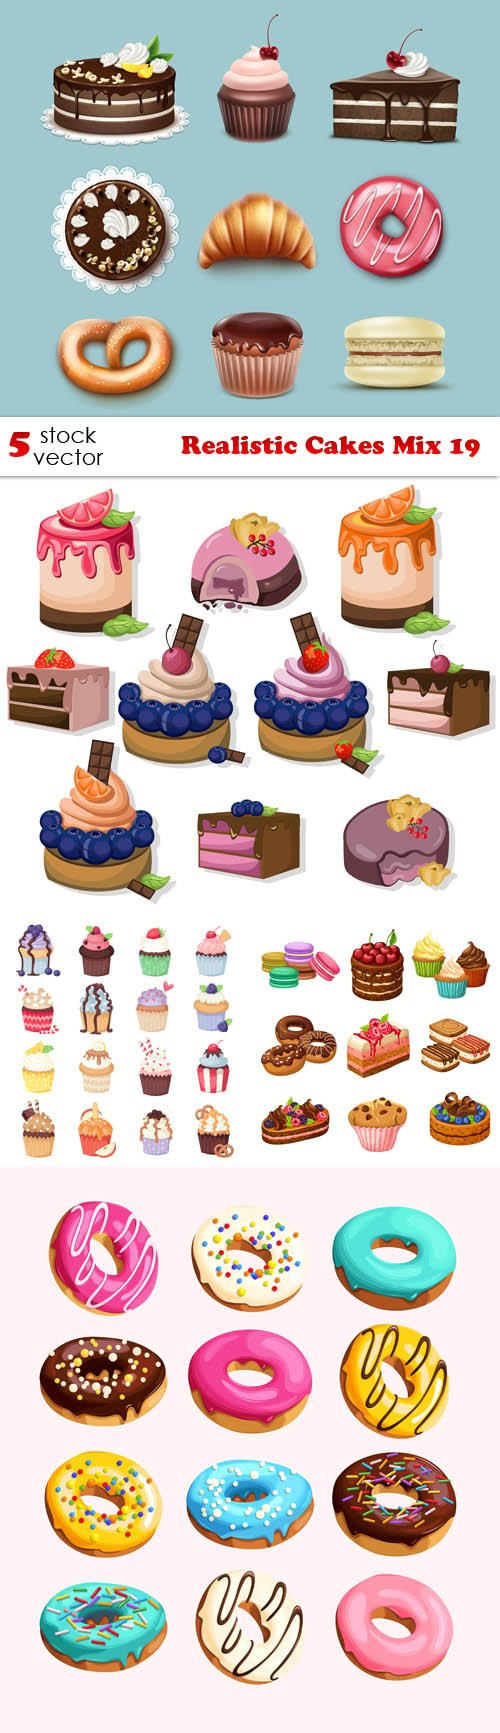 Vectors - Realistic Cakes Mix 19